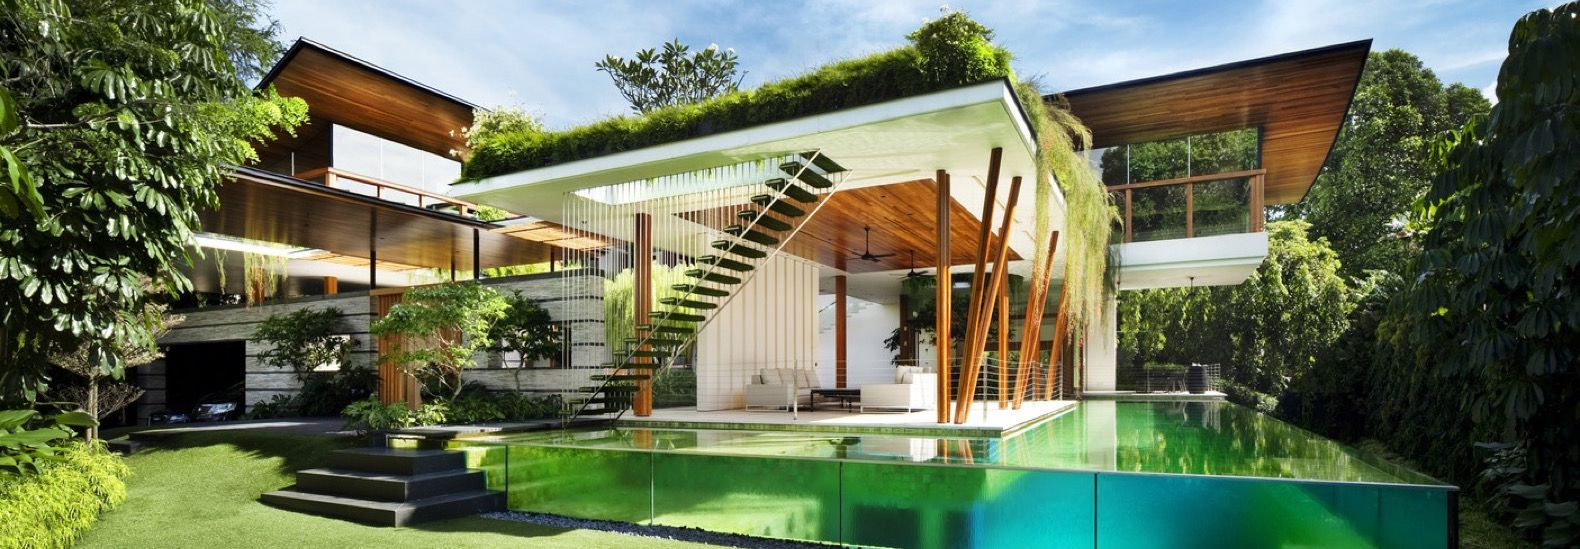 This breezy greenroofed home in Singapore embraces nature from all